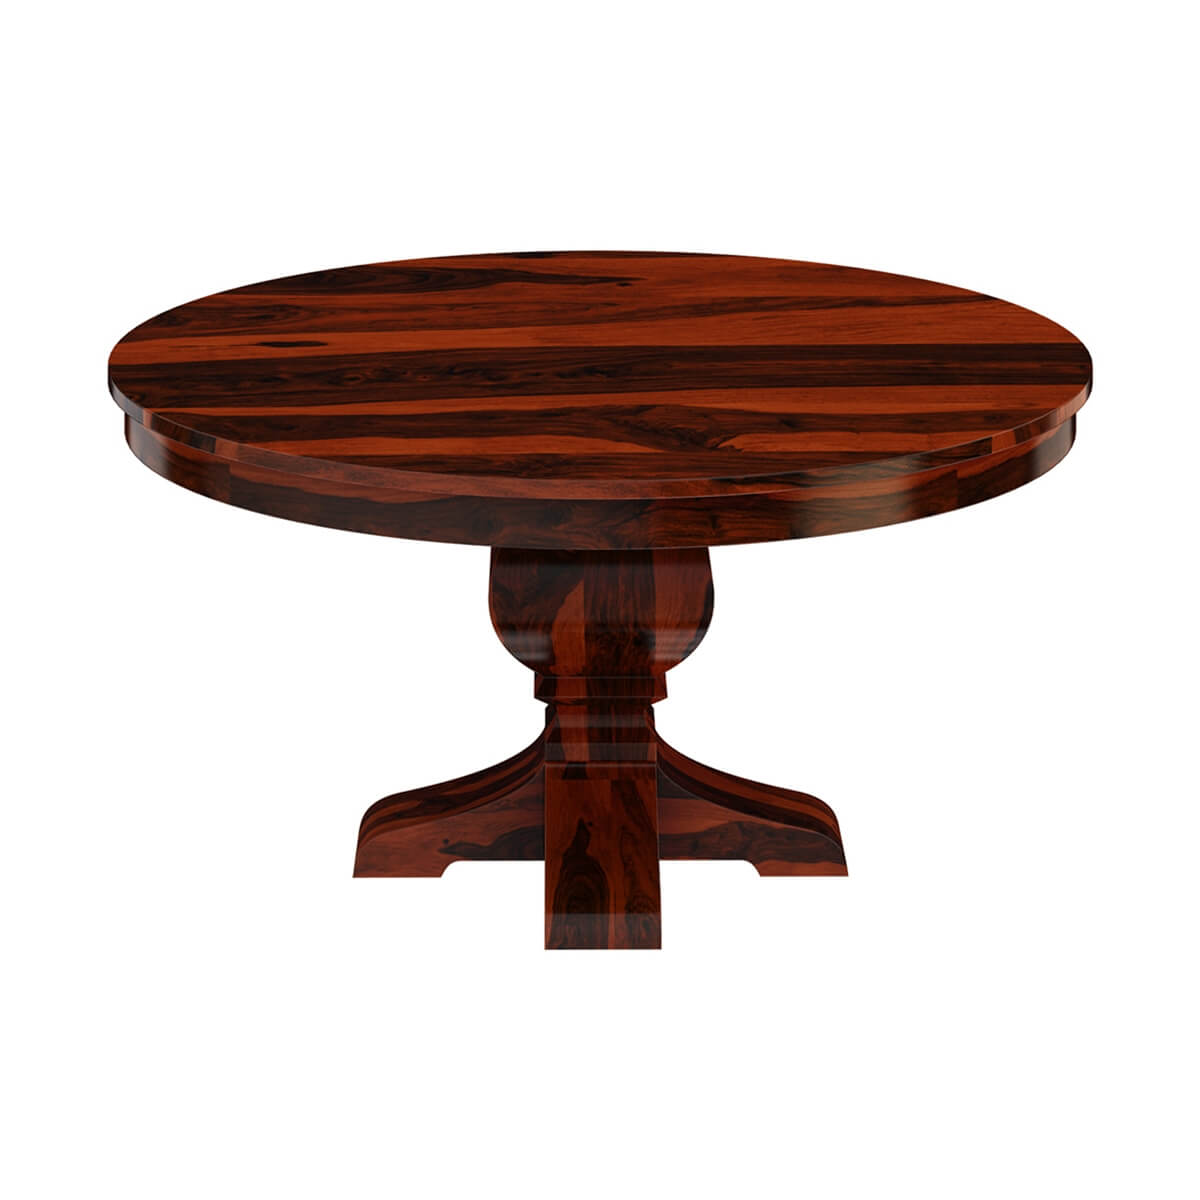 Solid wood round coffee table - Solid Wood Round Coffee Table